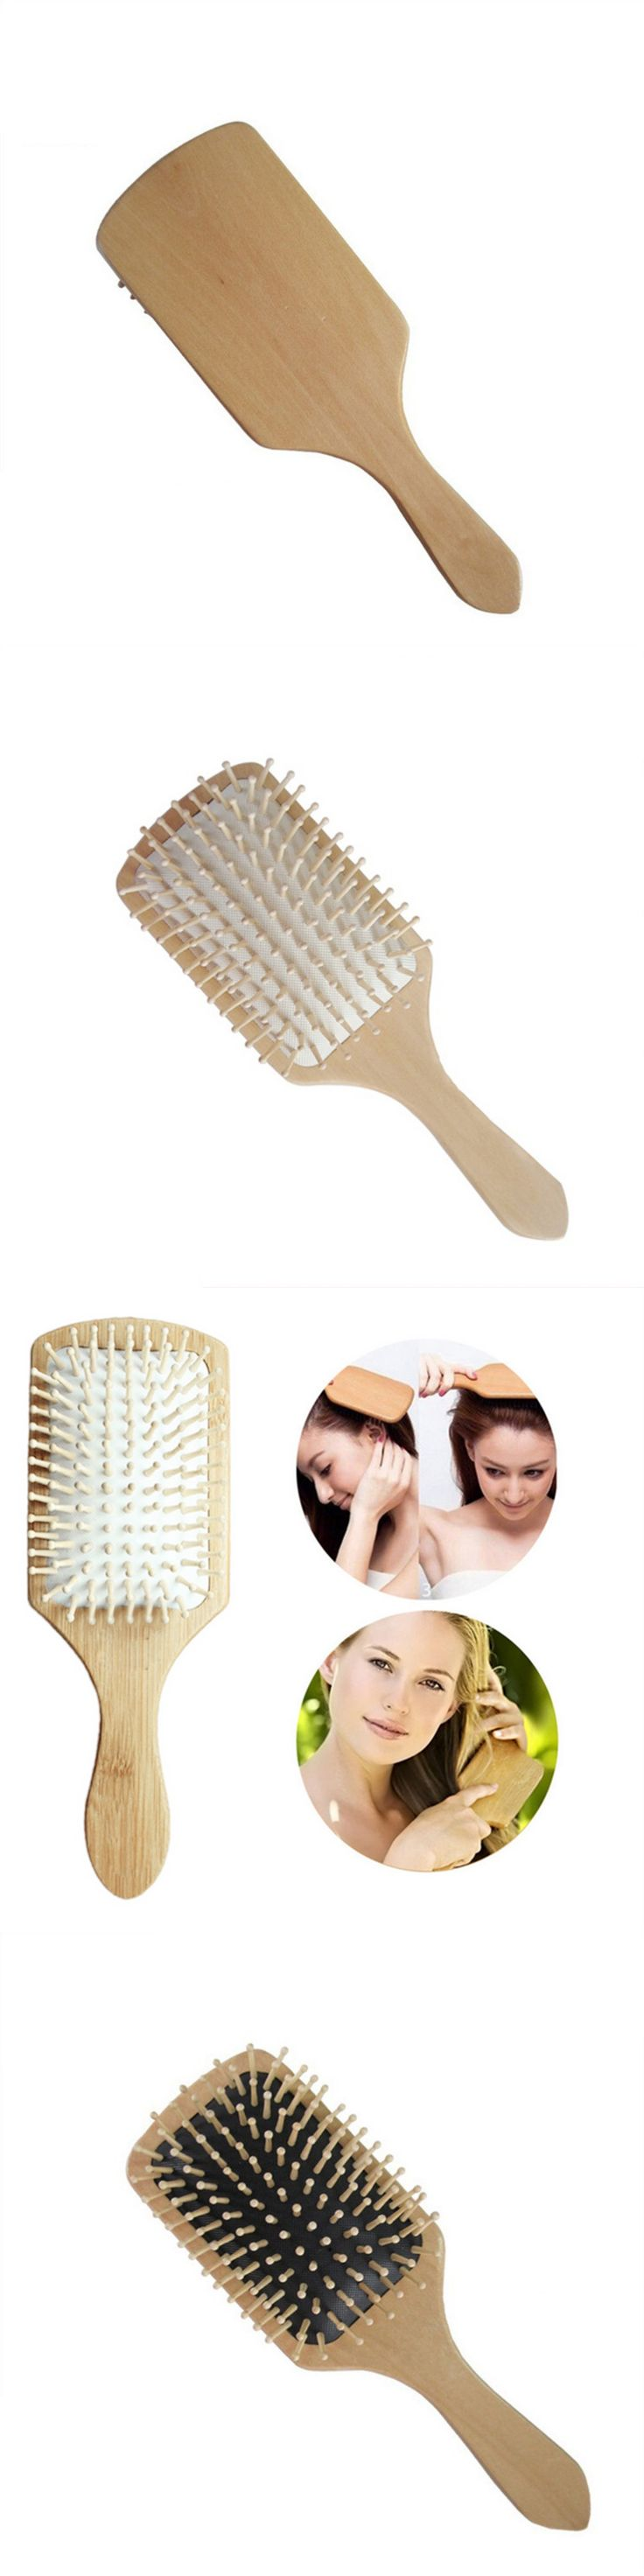 1pc Wooden Hair Brush Women Hair Care Spa Massage Comb Wooden Hair Brush Anti Static Paddle Teeth Cushion Comb Pointed Handle